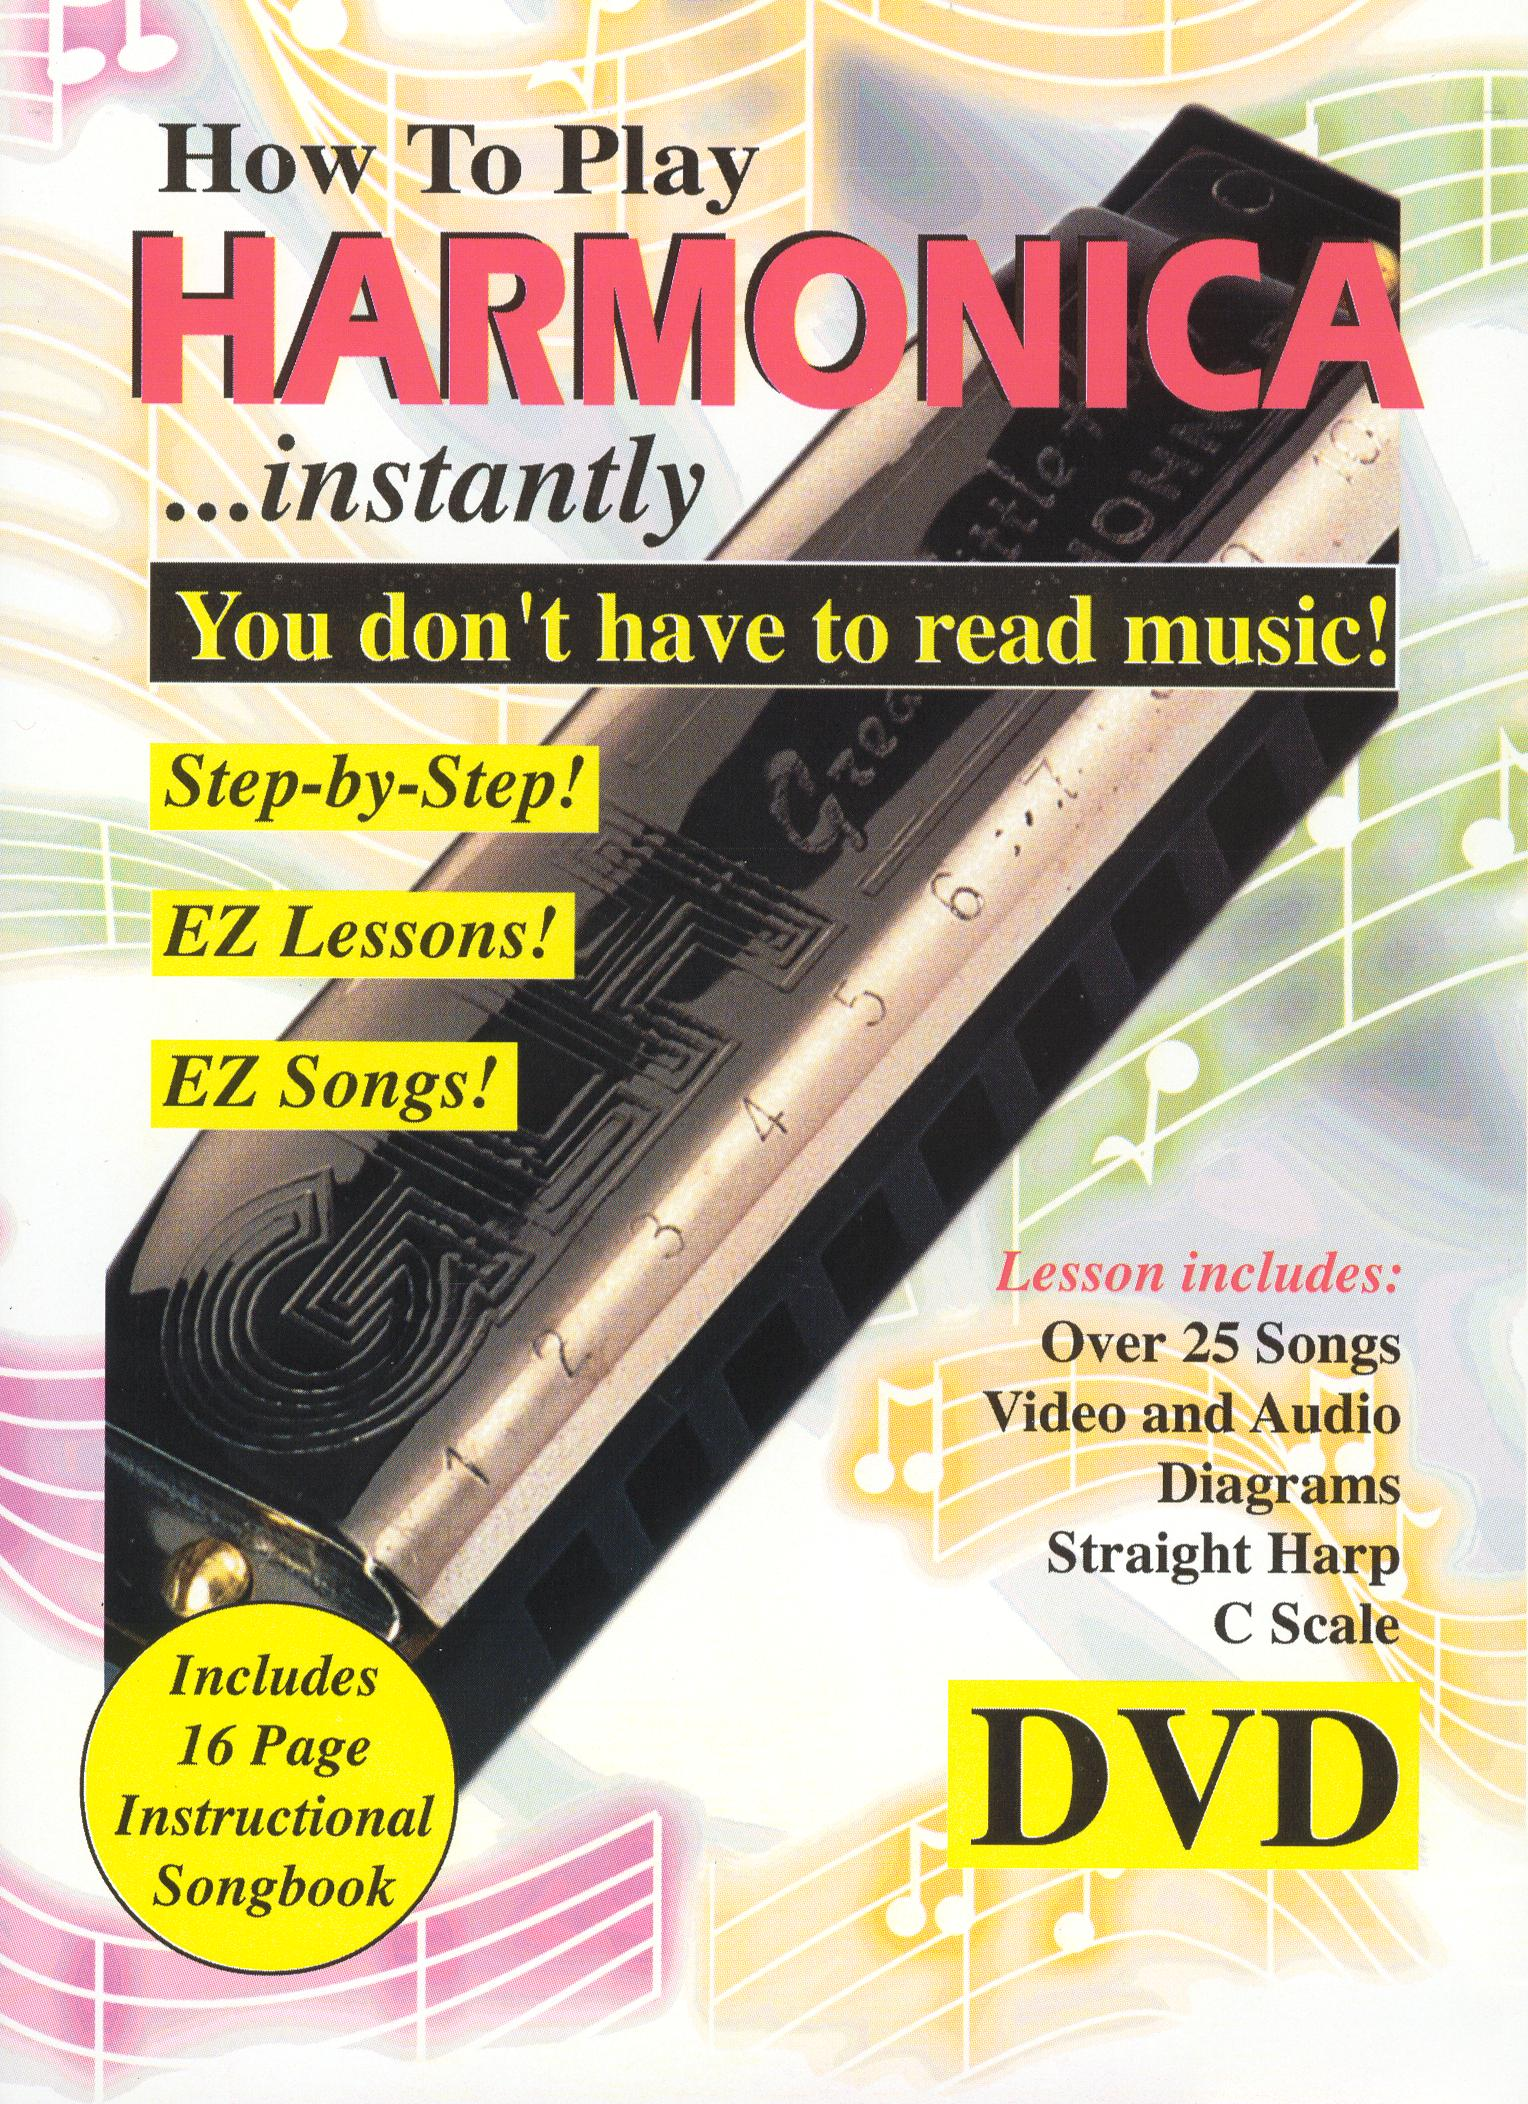 How to Play Harmonica... Instantly!